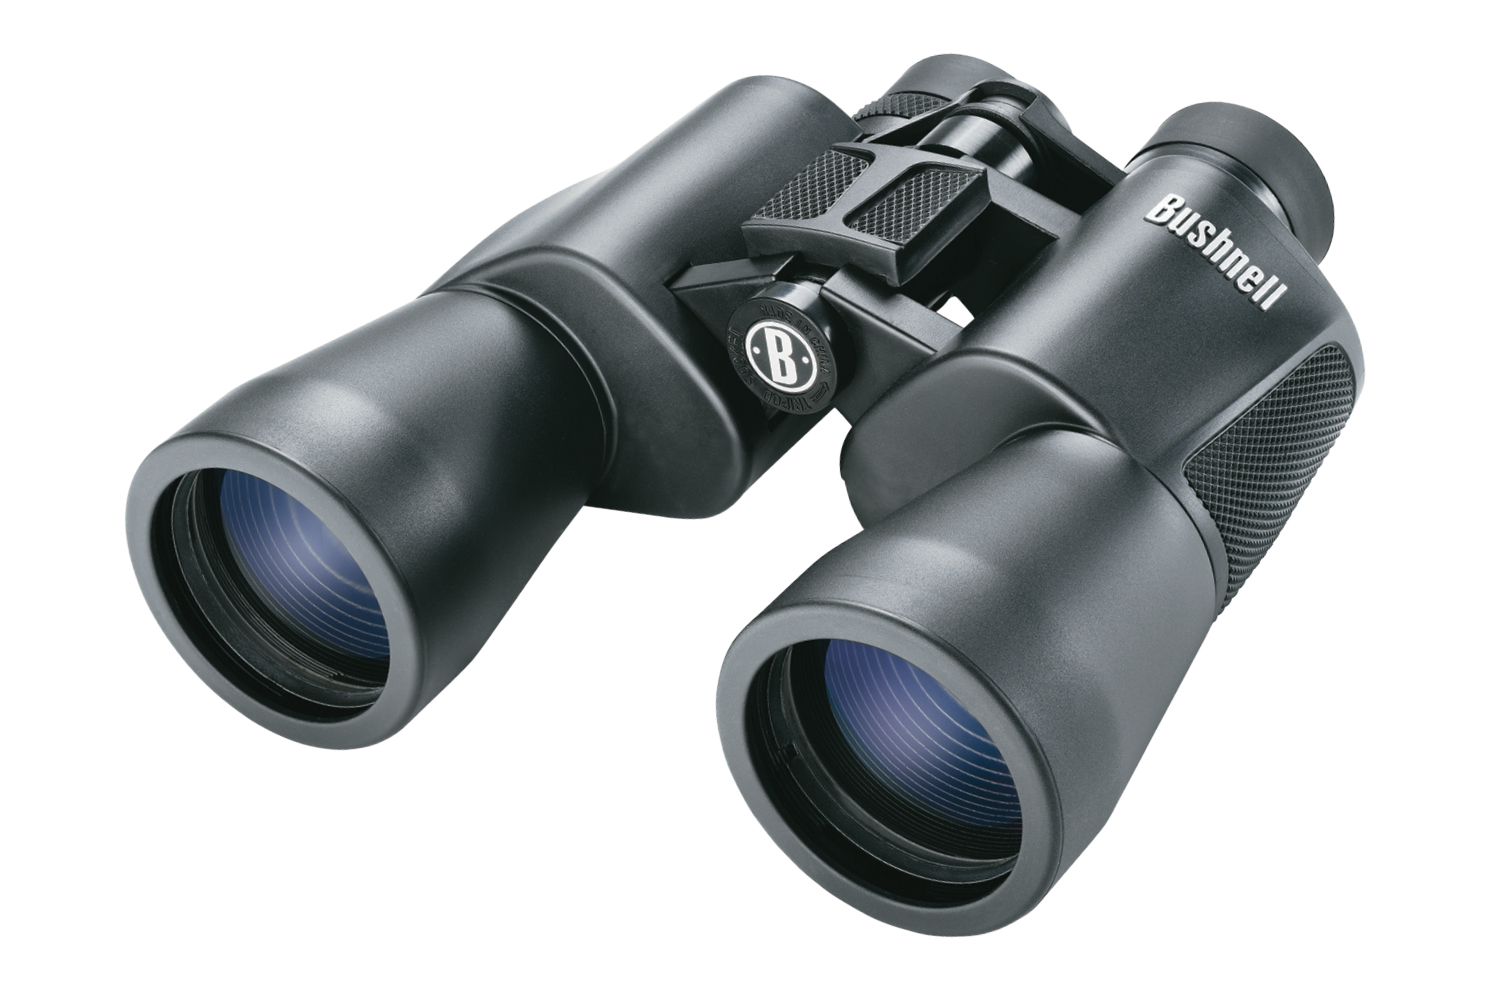 Бинокль Bushnell PowerView PORRO 12x50 бинокль bushnell engage 12x50